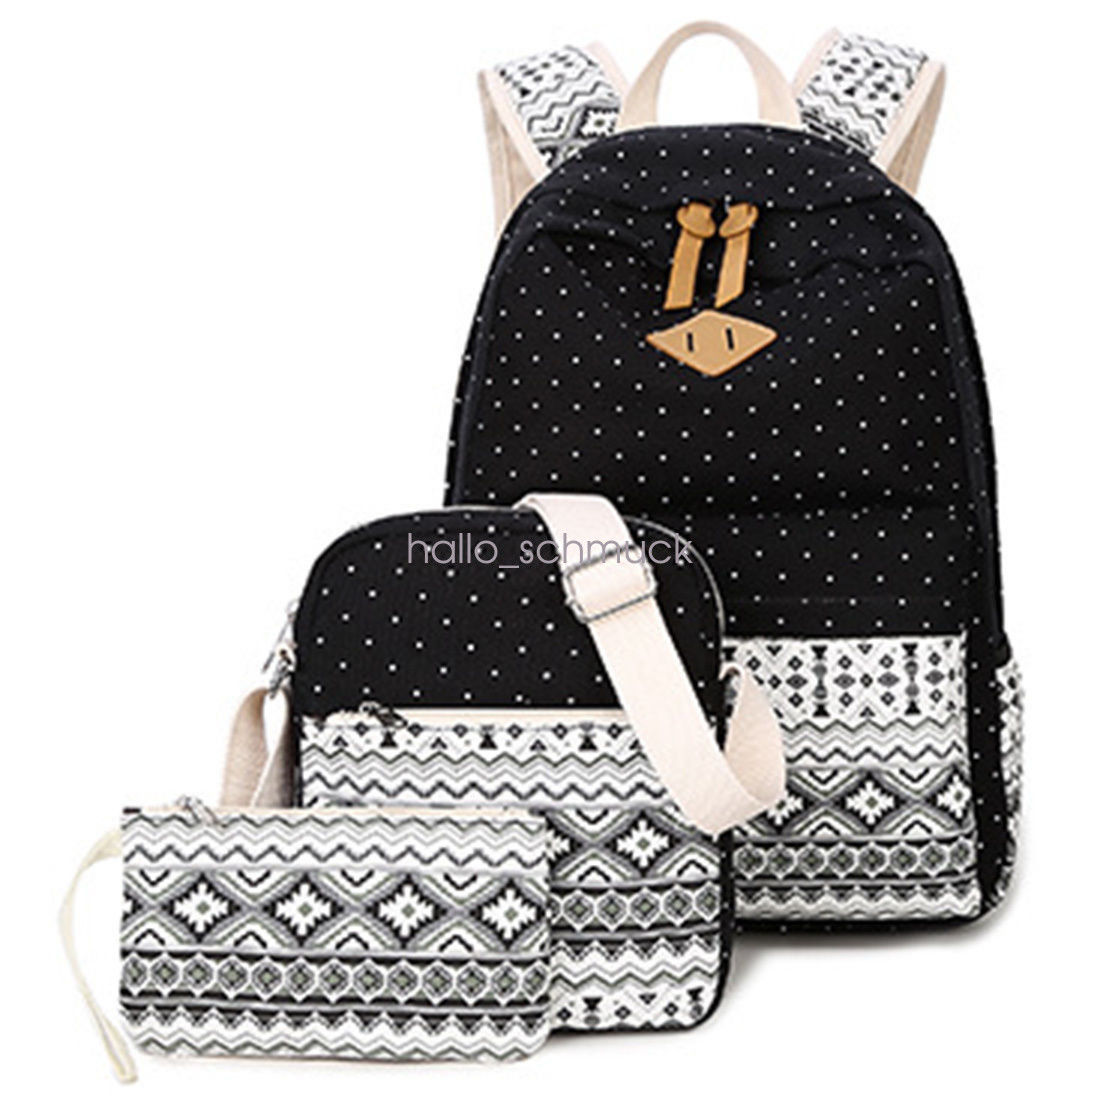 3pcs/Set Backpack Women Canvas Travel Bookbags School Bags for Teenage Girls  Backpack Purse  Bookbag